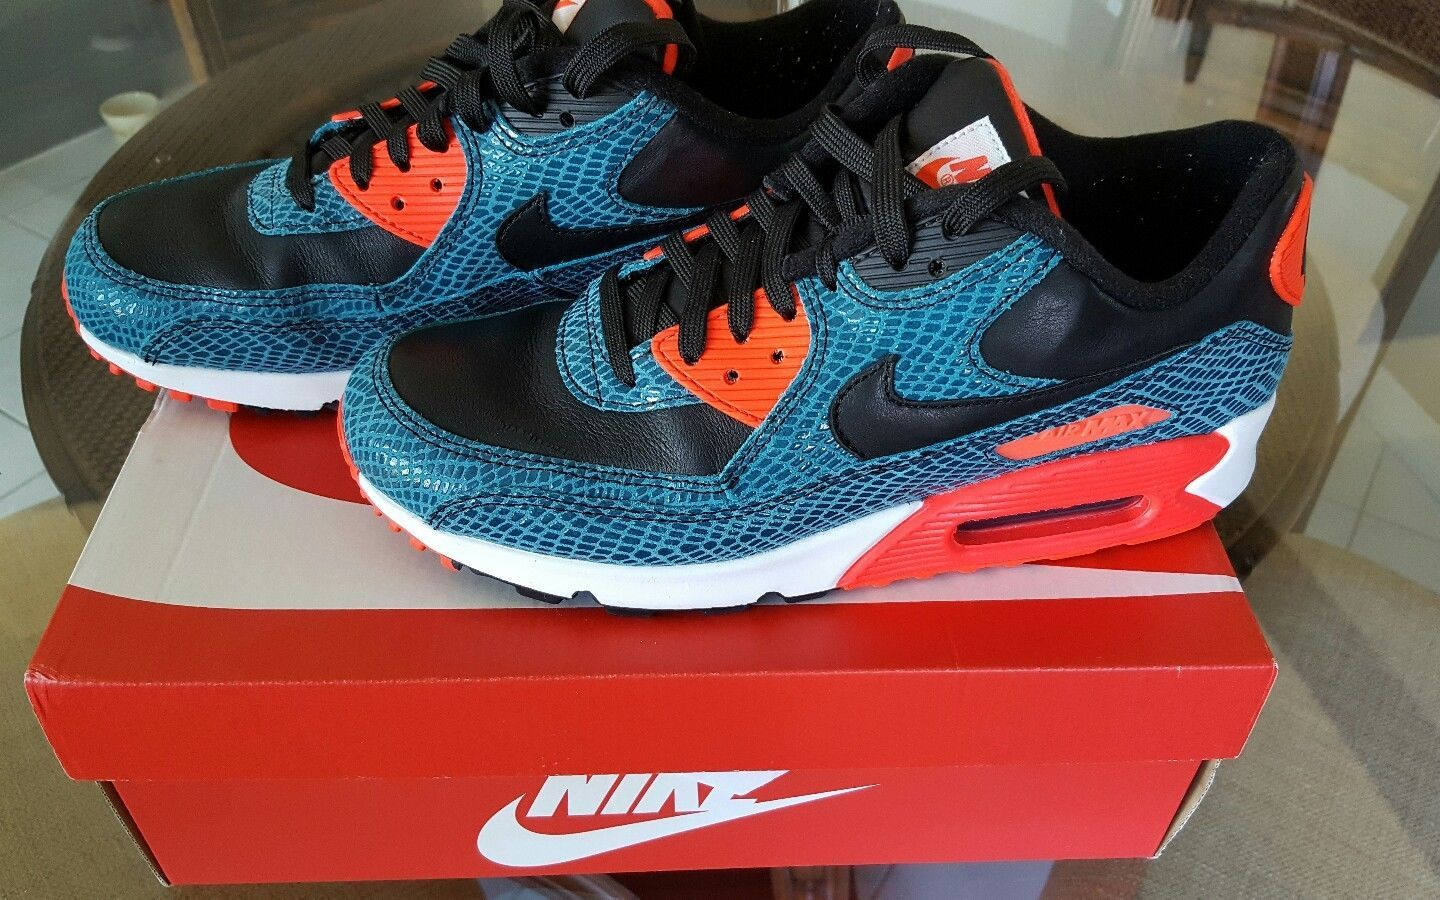 45519001905a Nike Air Max 90 Anniversary Mens size 9 Dusty Cactus Black Infrared 725235  300